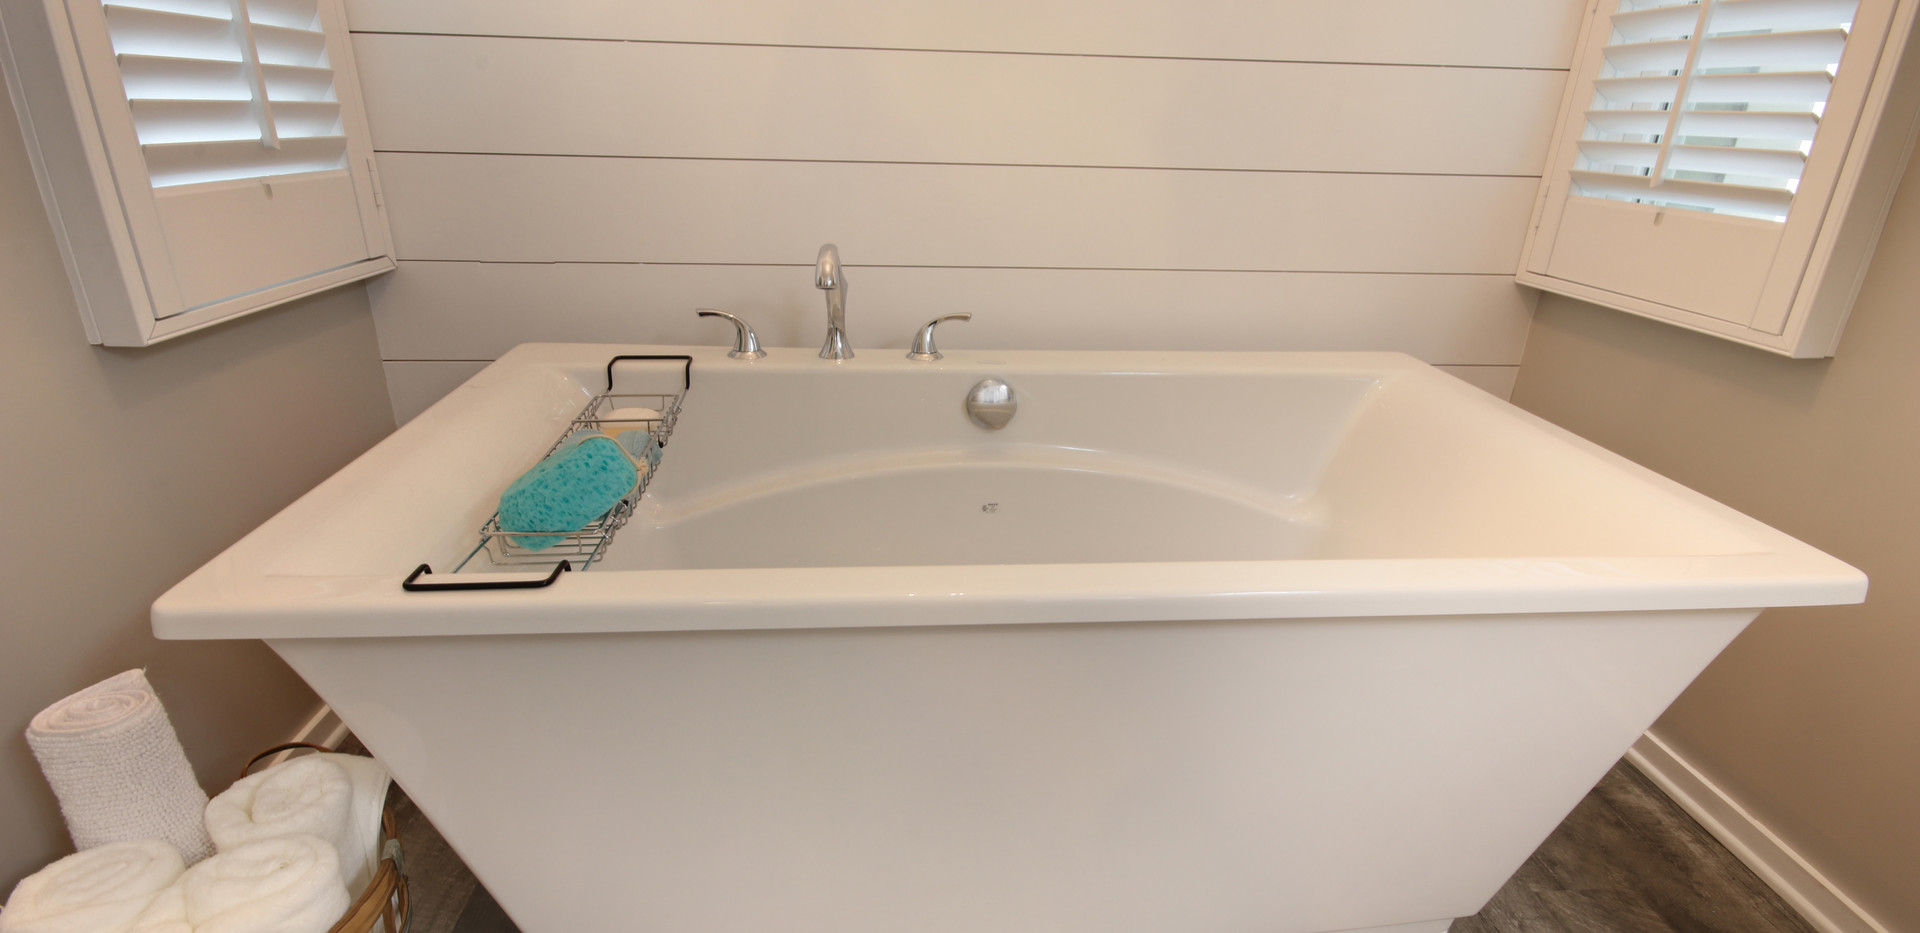 New bathroom tub remodel project in Holland by Renew Home Improvement bathroom remodeler